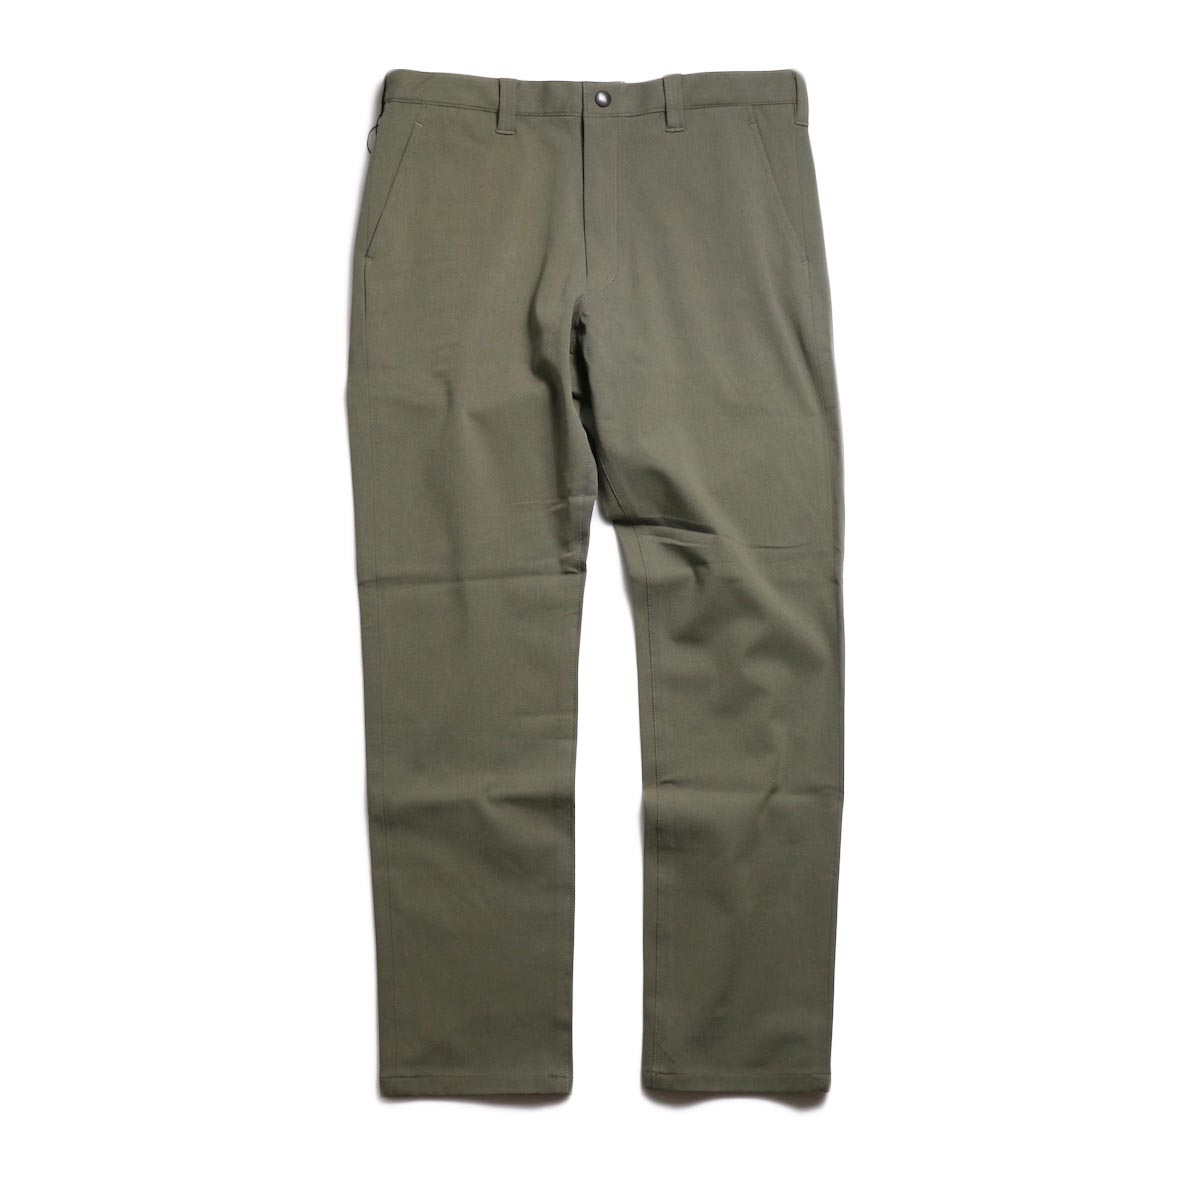 N.HOOLYWOOD / 291-CP04-018-peg Stretch Chino Pant (Gray)